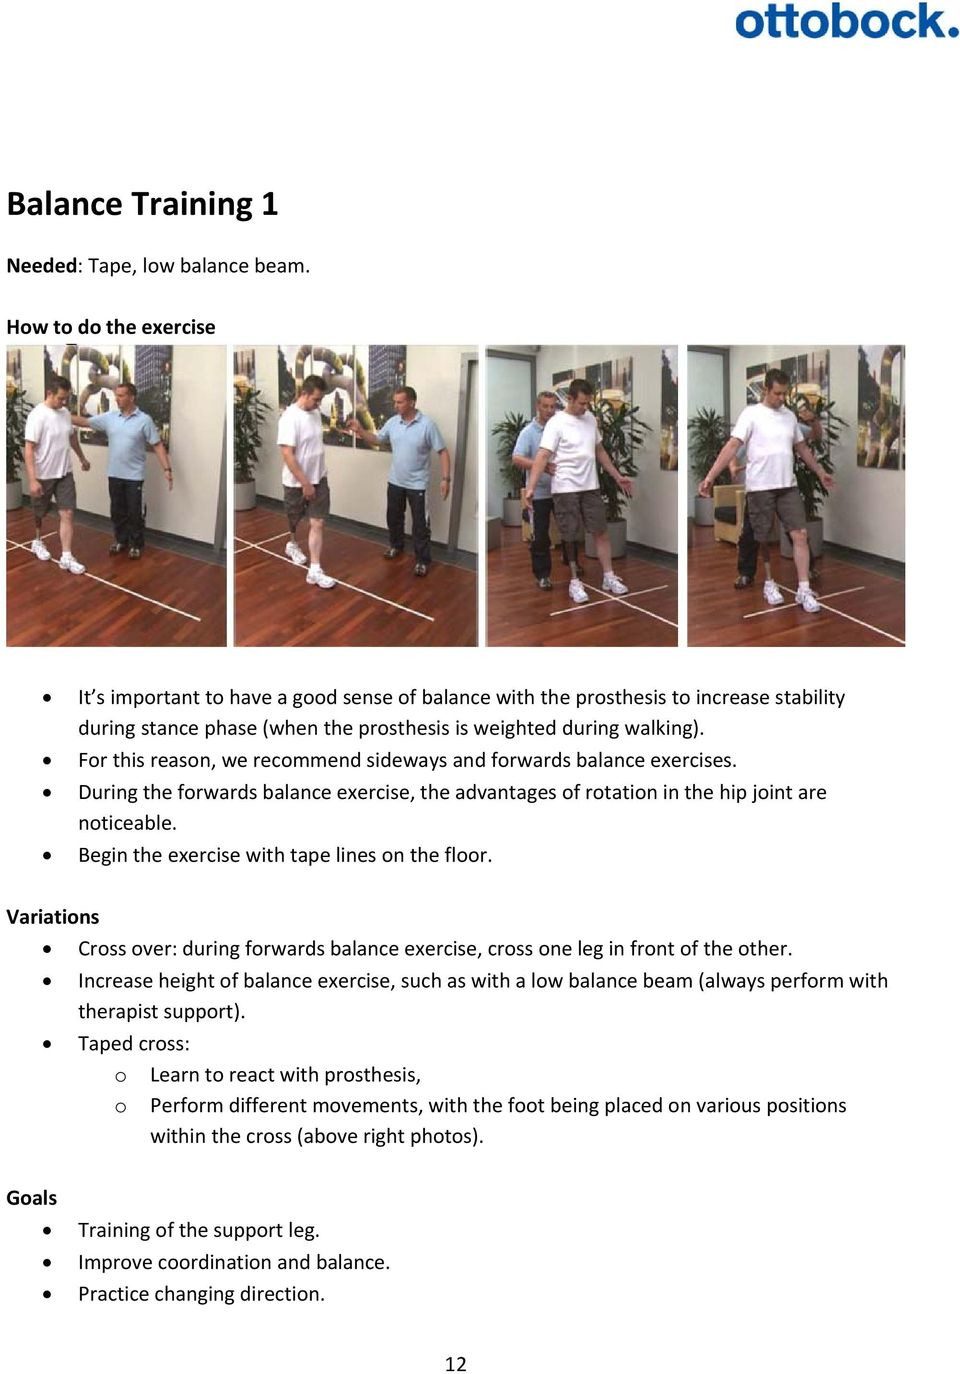 For this reason, we recommend sideways and forwards balance exercises. During the forwards balance exercise, the advantages of rotation in the hip joint are noticeable.